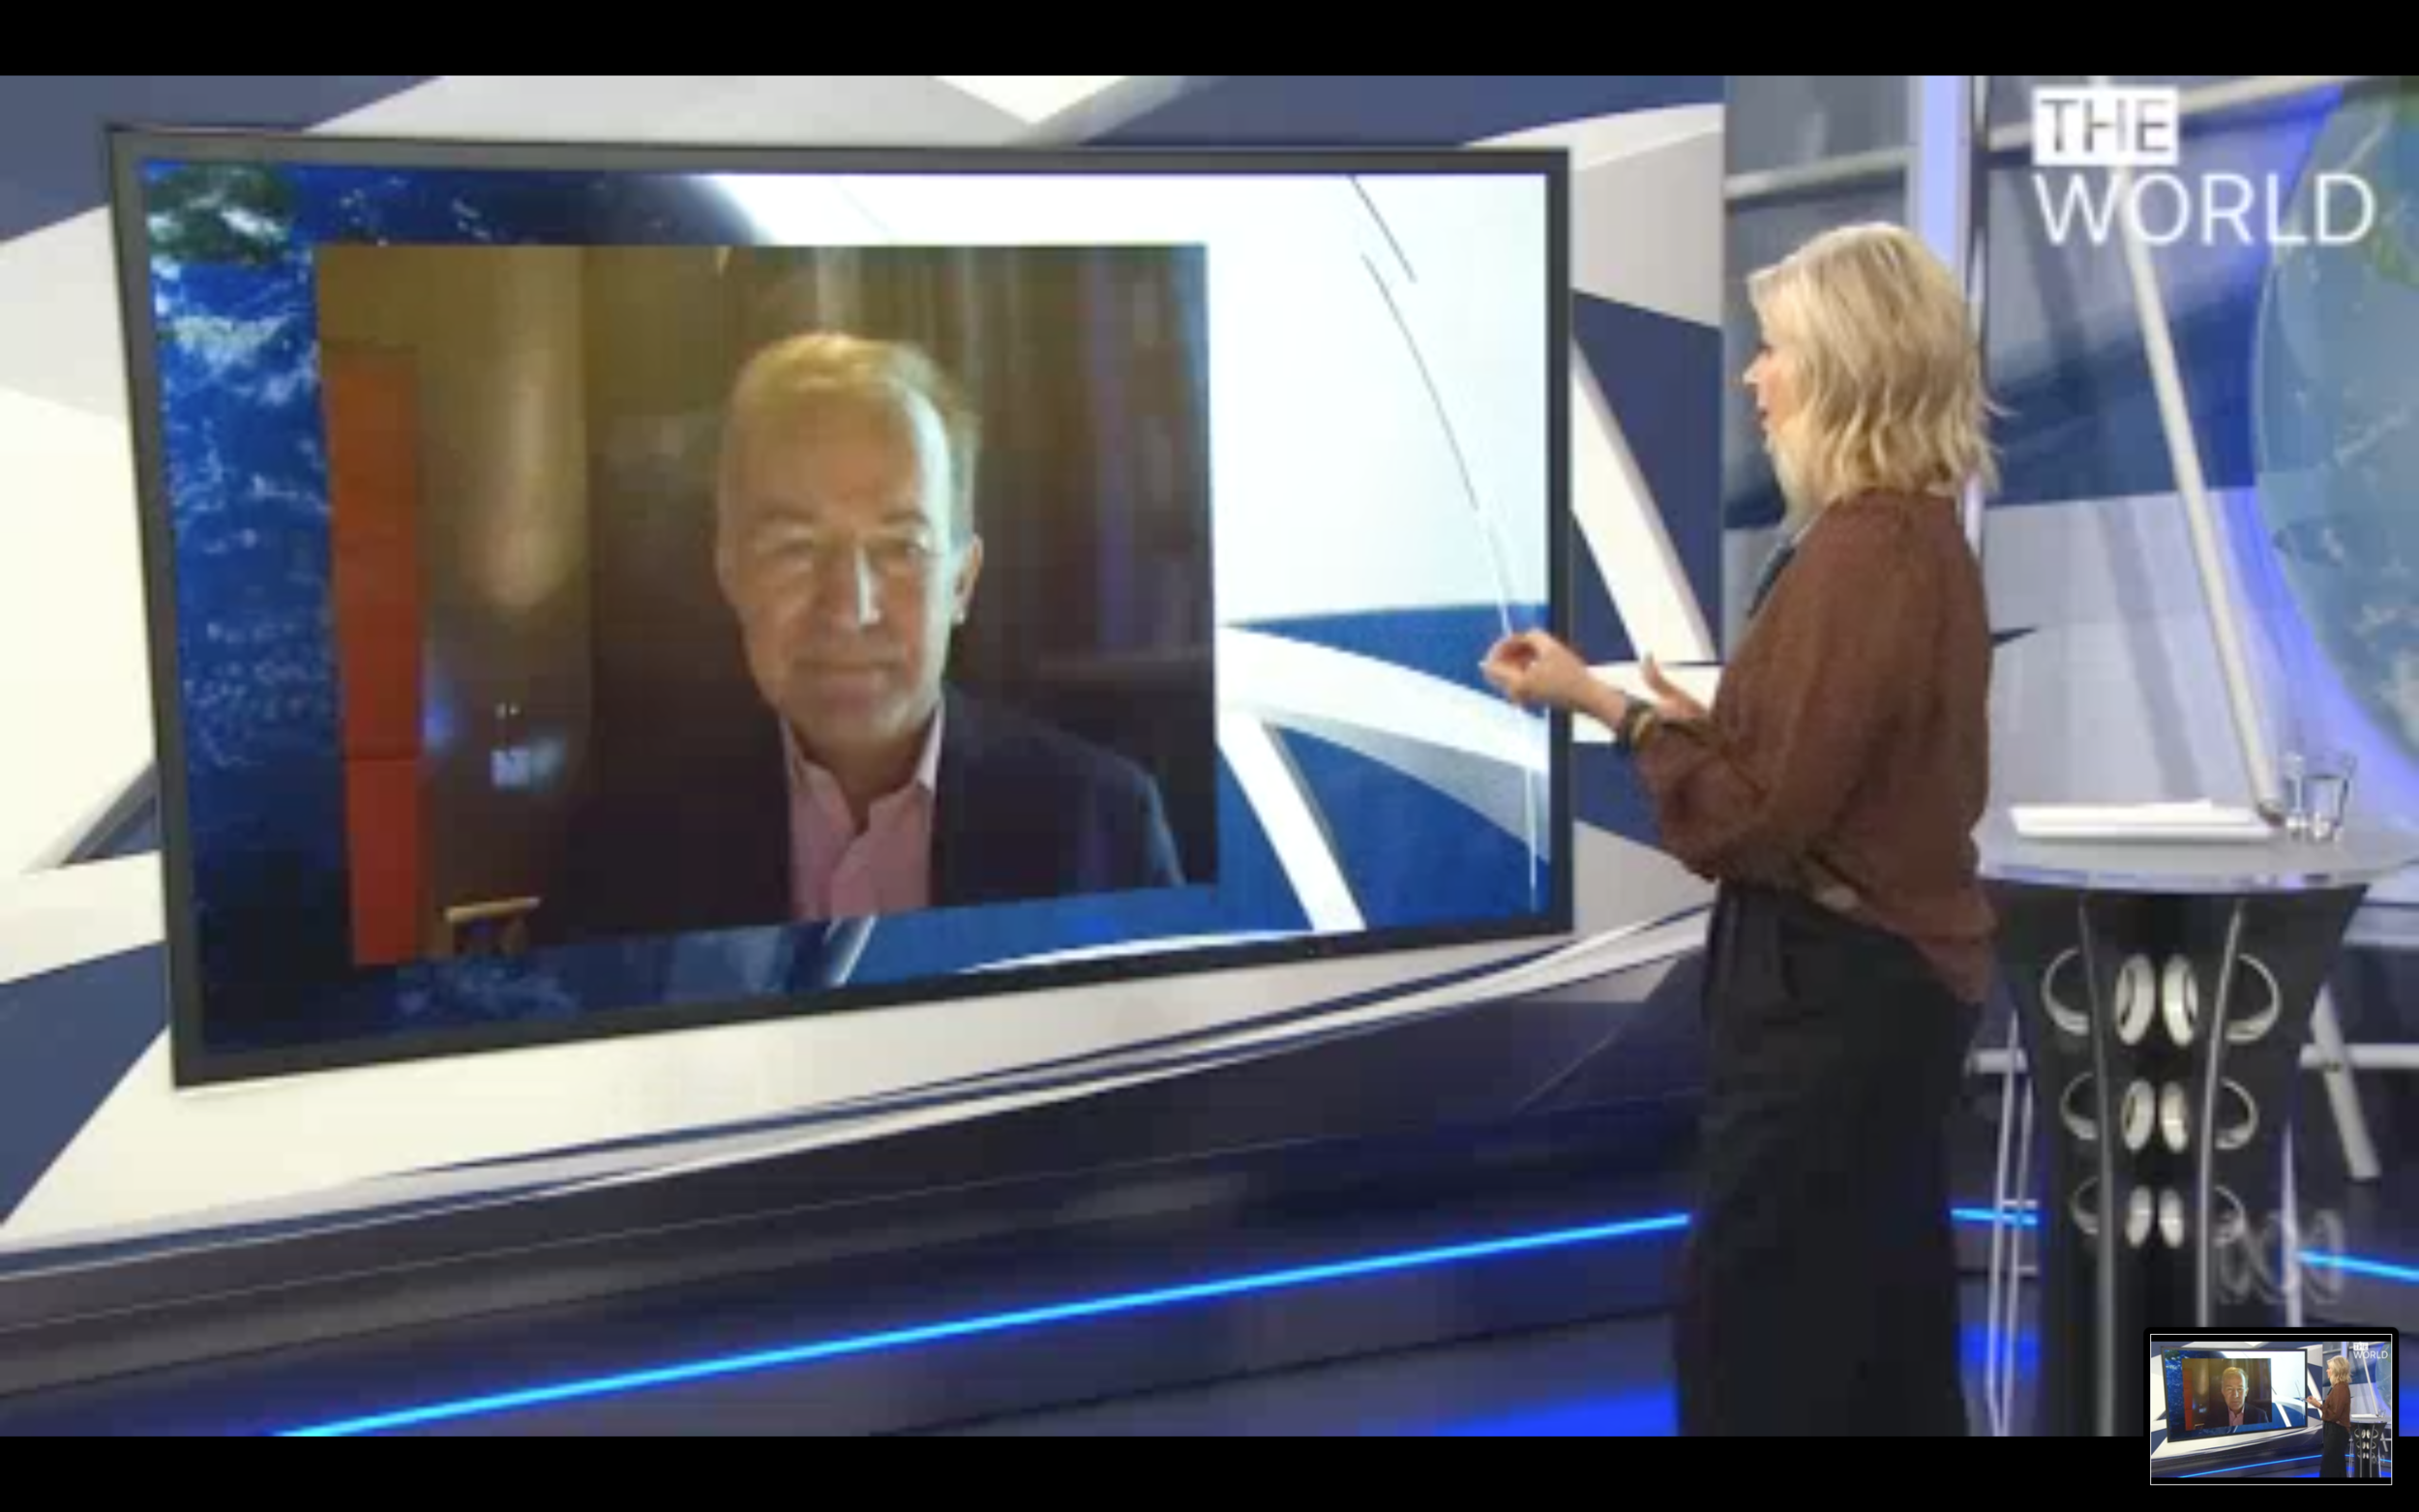 ABC TV: The World, July 17, 2019: Global affairs analyst, Michael Bociurkiw says relatives of victims killed in the MH17 downing, are pained to hear the Malaysian Prime Minister cast doubt on the investigation, as they commemorate five years since the tragedy. To watch, click   here